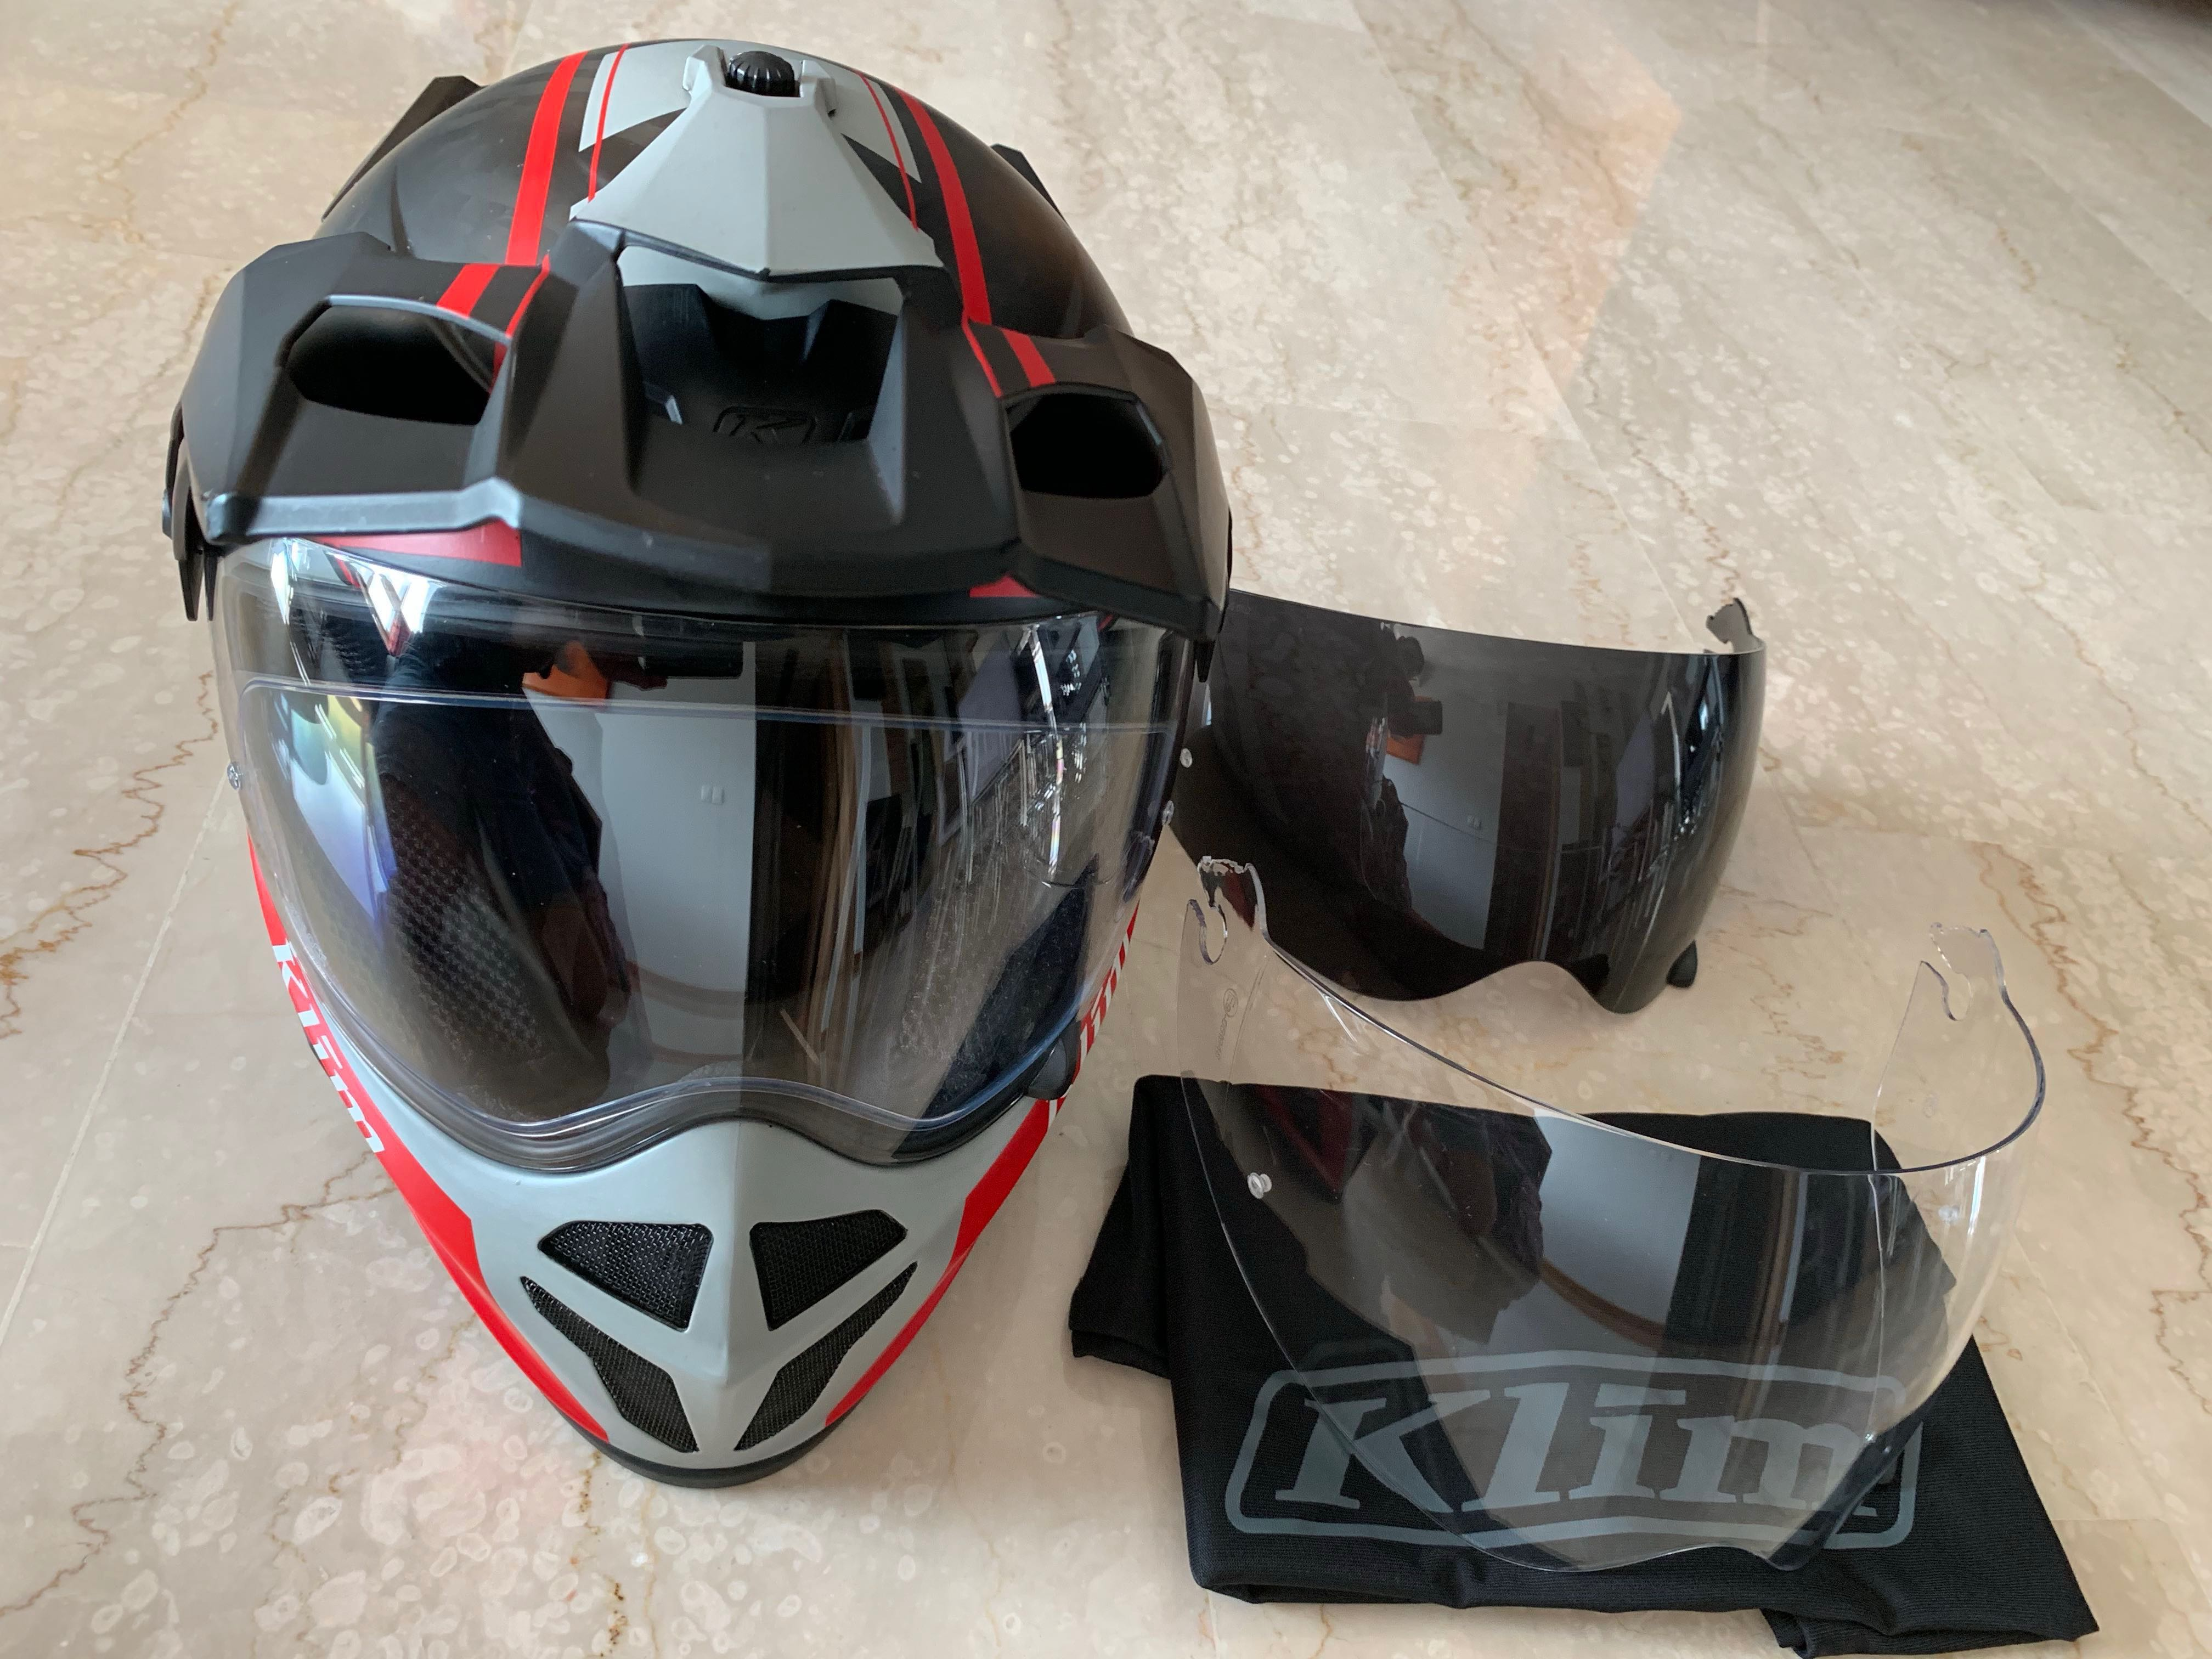 71a662d3 Klim Krios Vanquish Red with transition visor (M size), Motorbikes,  Motorbike Apparel on Carousell